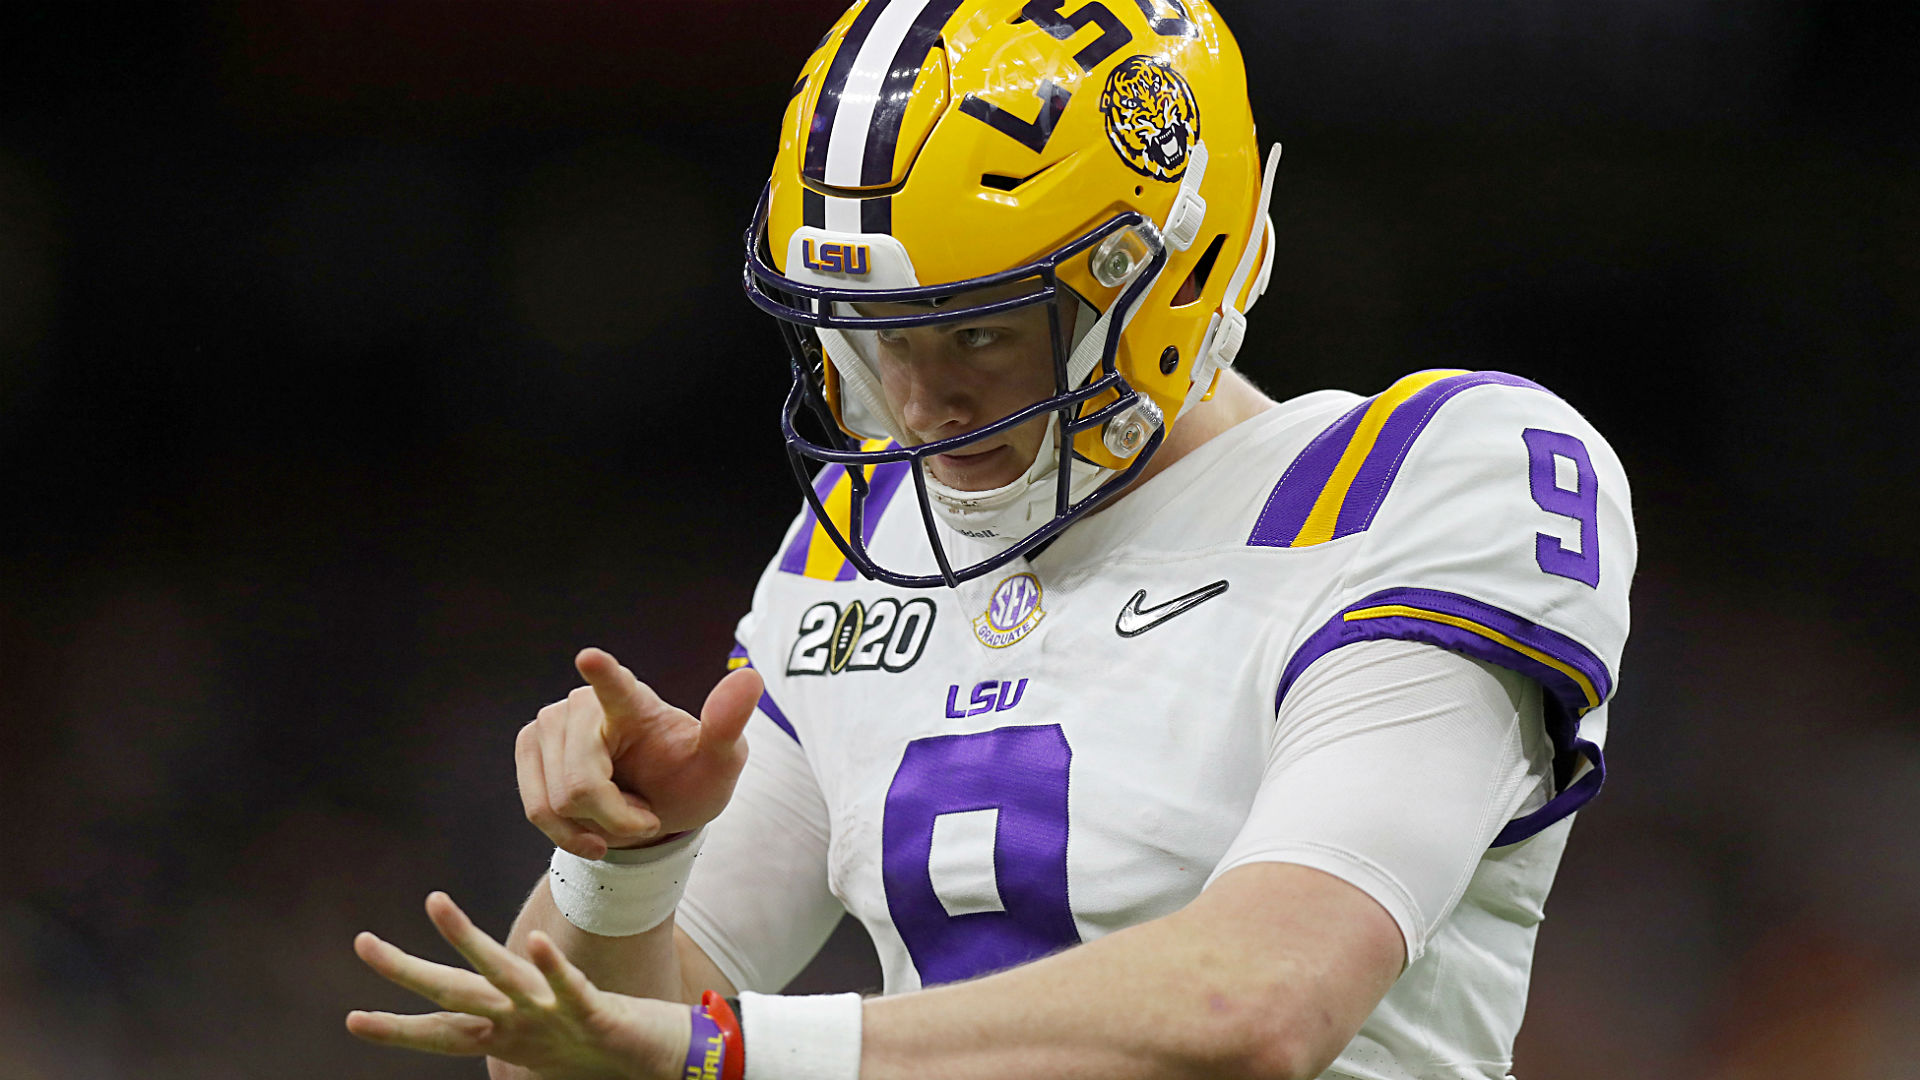 No, Joe Burrow's hand size won't keep him away from Bengals in 2020 NFL Draft